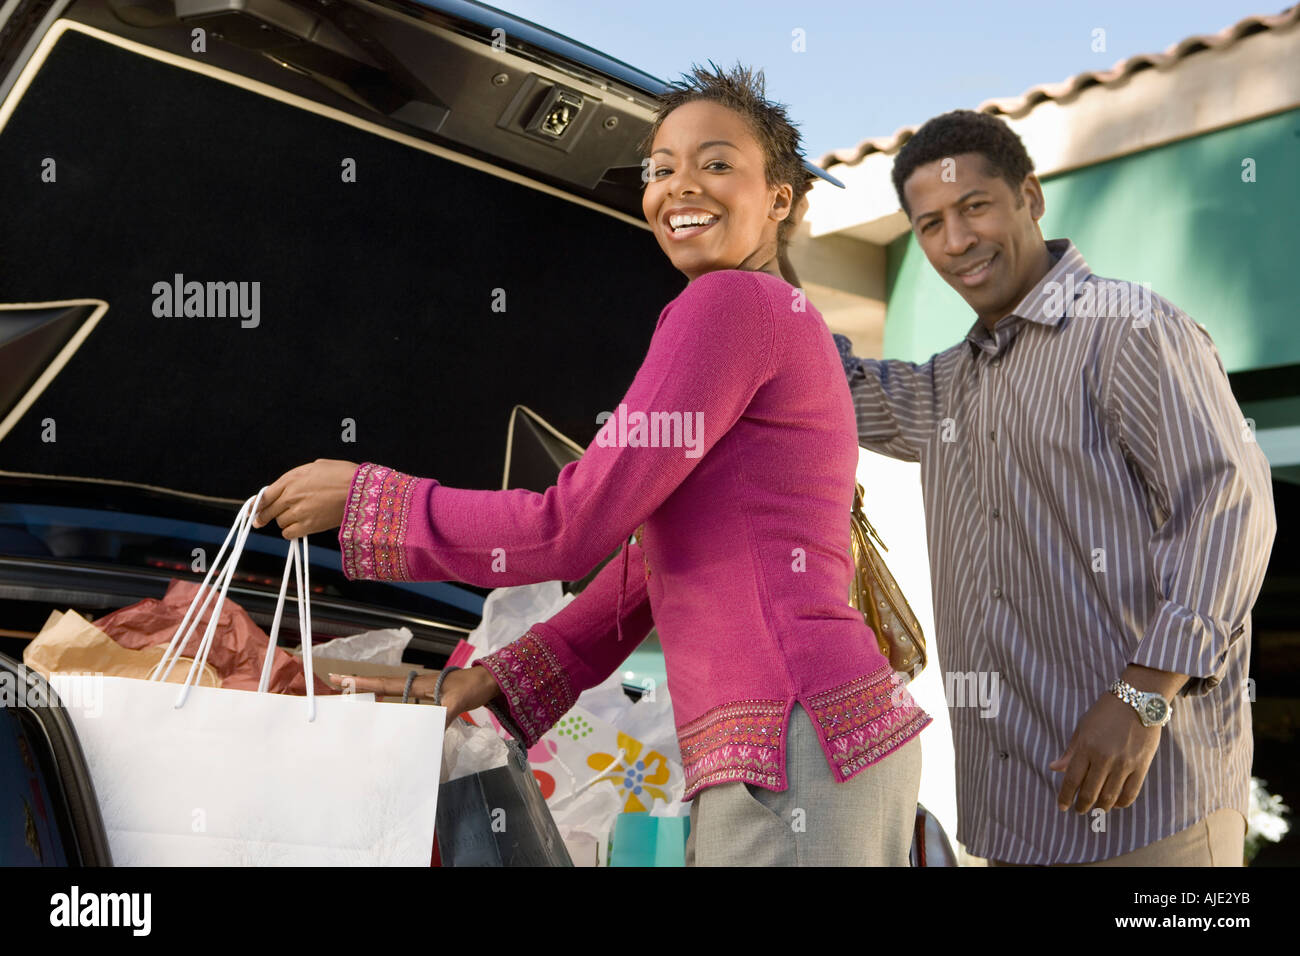 Couple putting shopping bags into boot of car, portrait - Stock Image